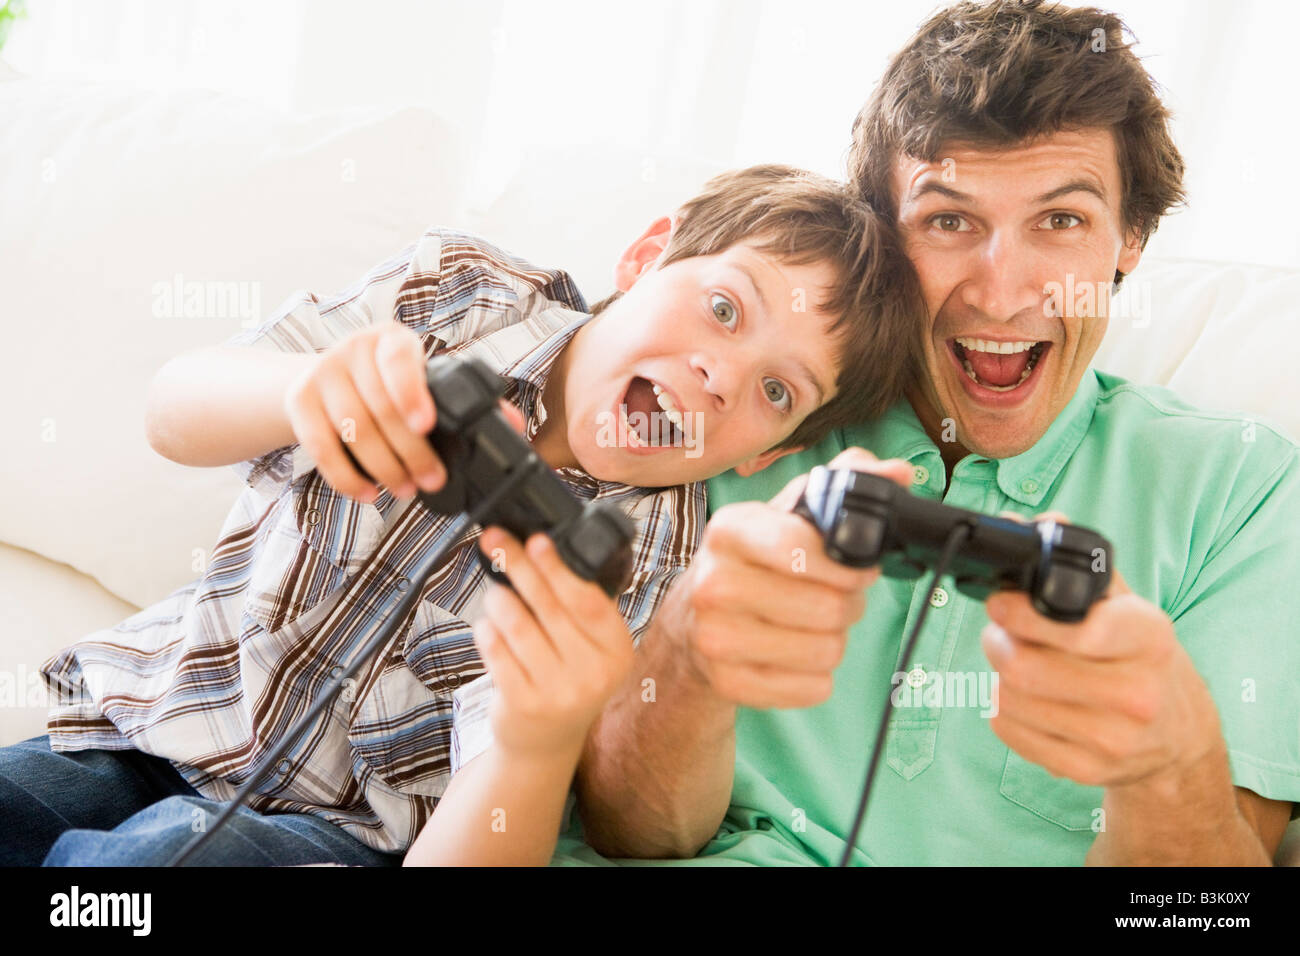 Man and young boy with video game controllers smiling Stock Photo